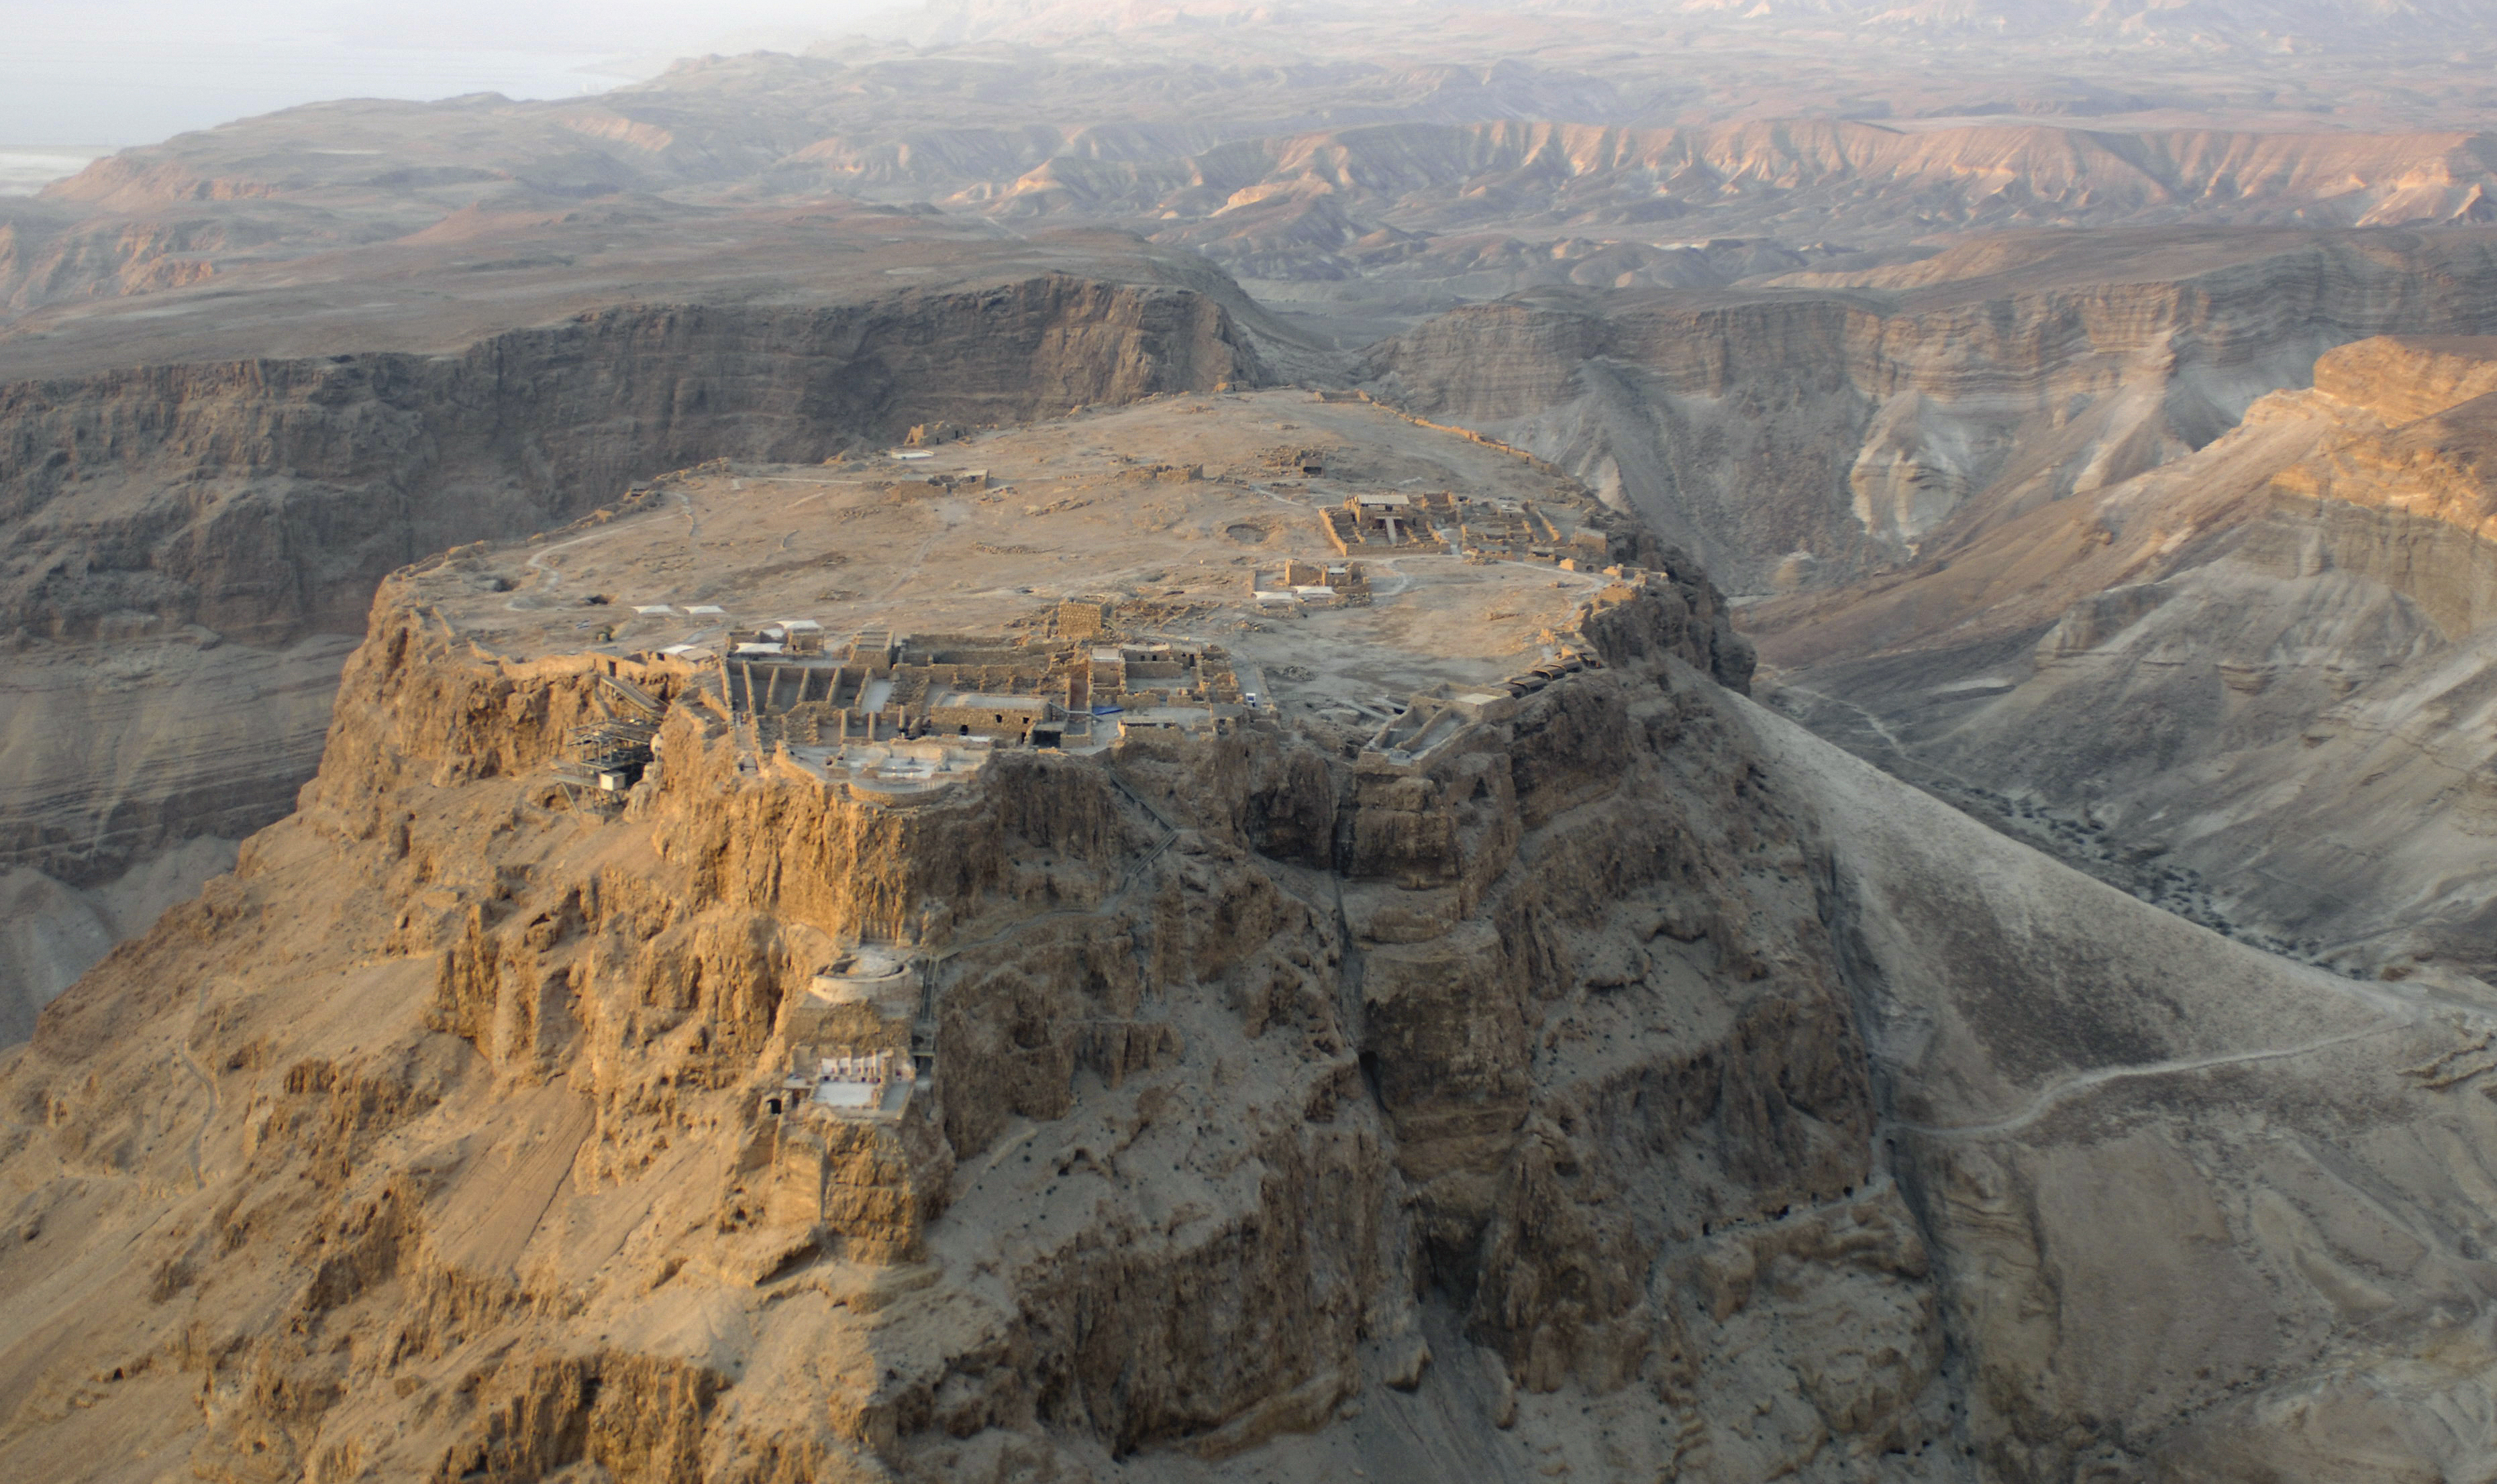 aerial view of Masada, Israel.